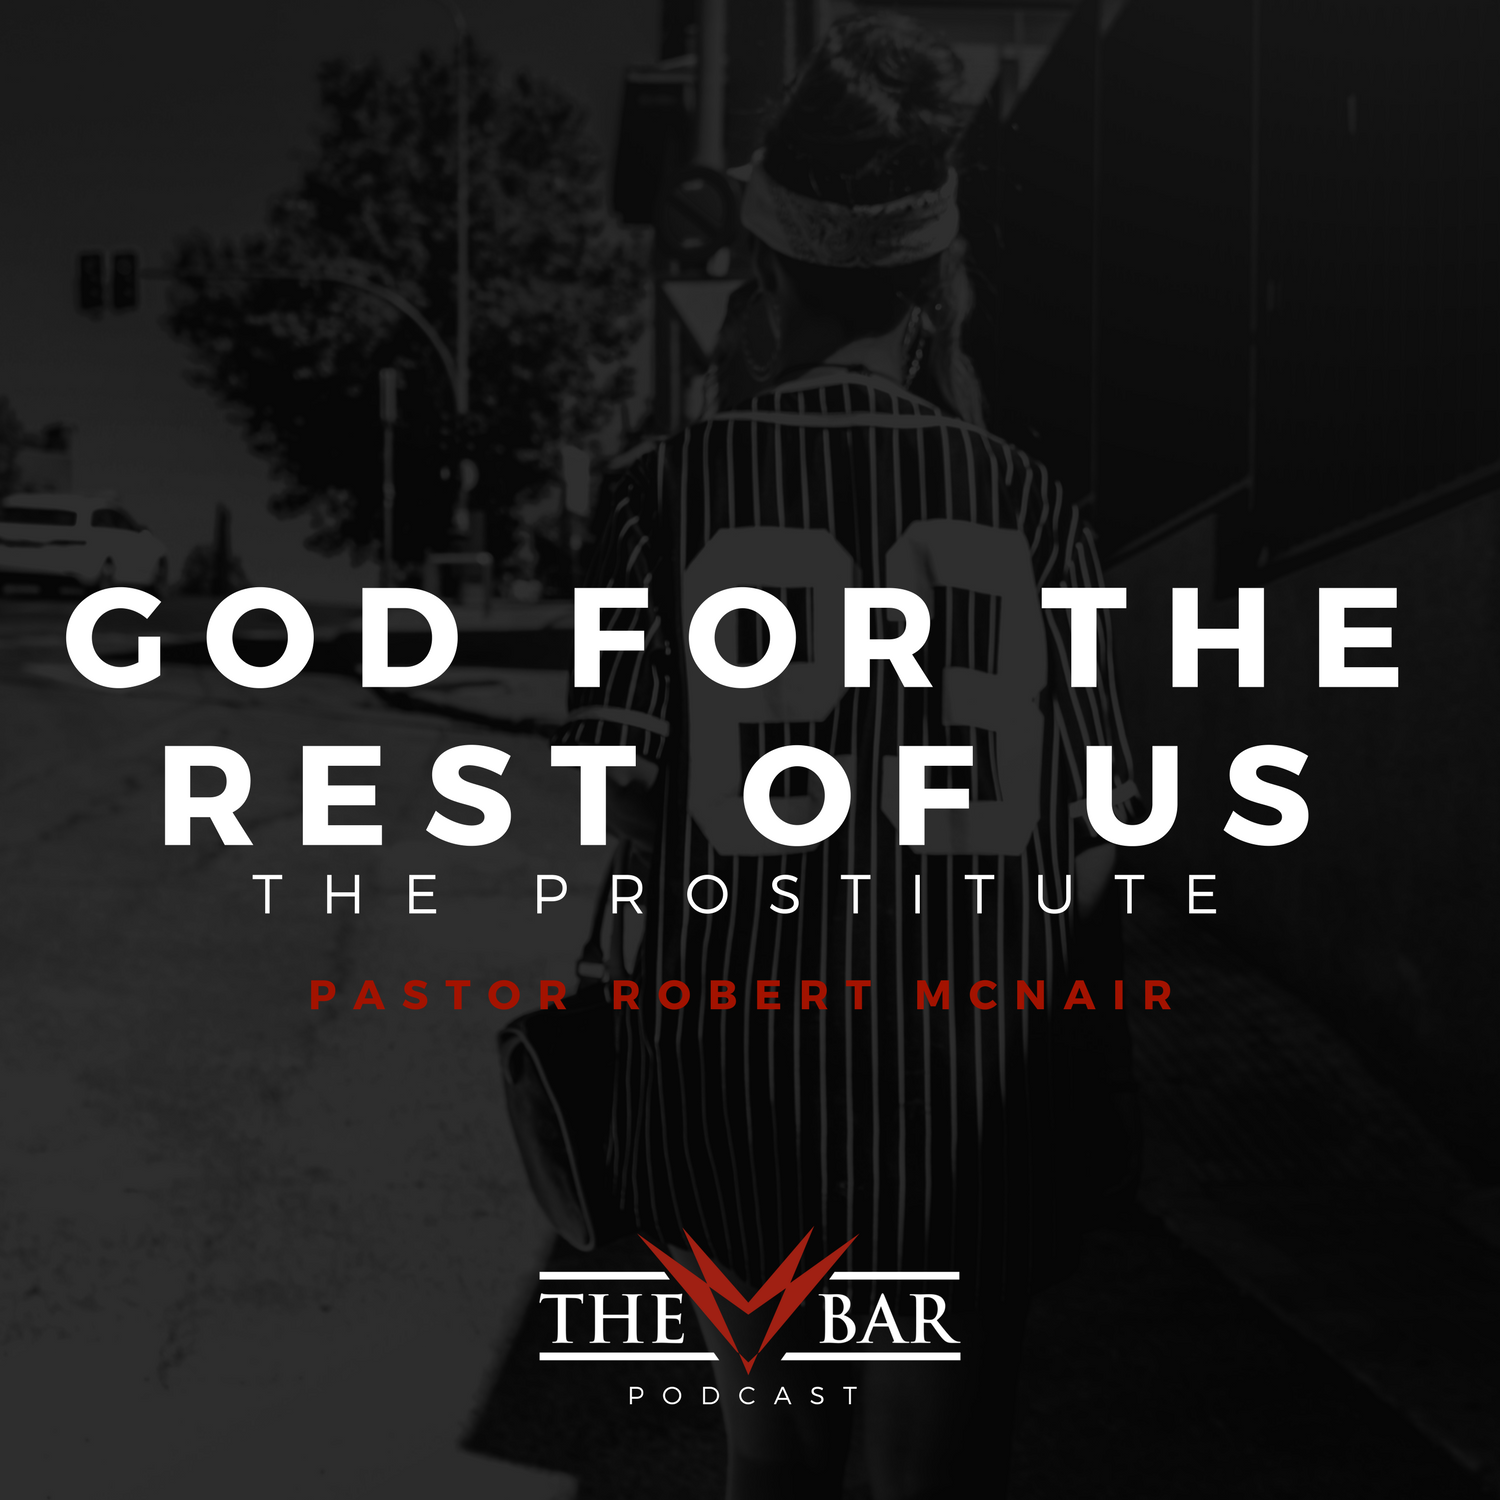 The-BAR-Podcsat-God-For-The-Prostitute